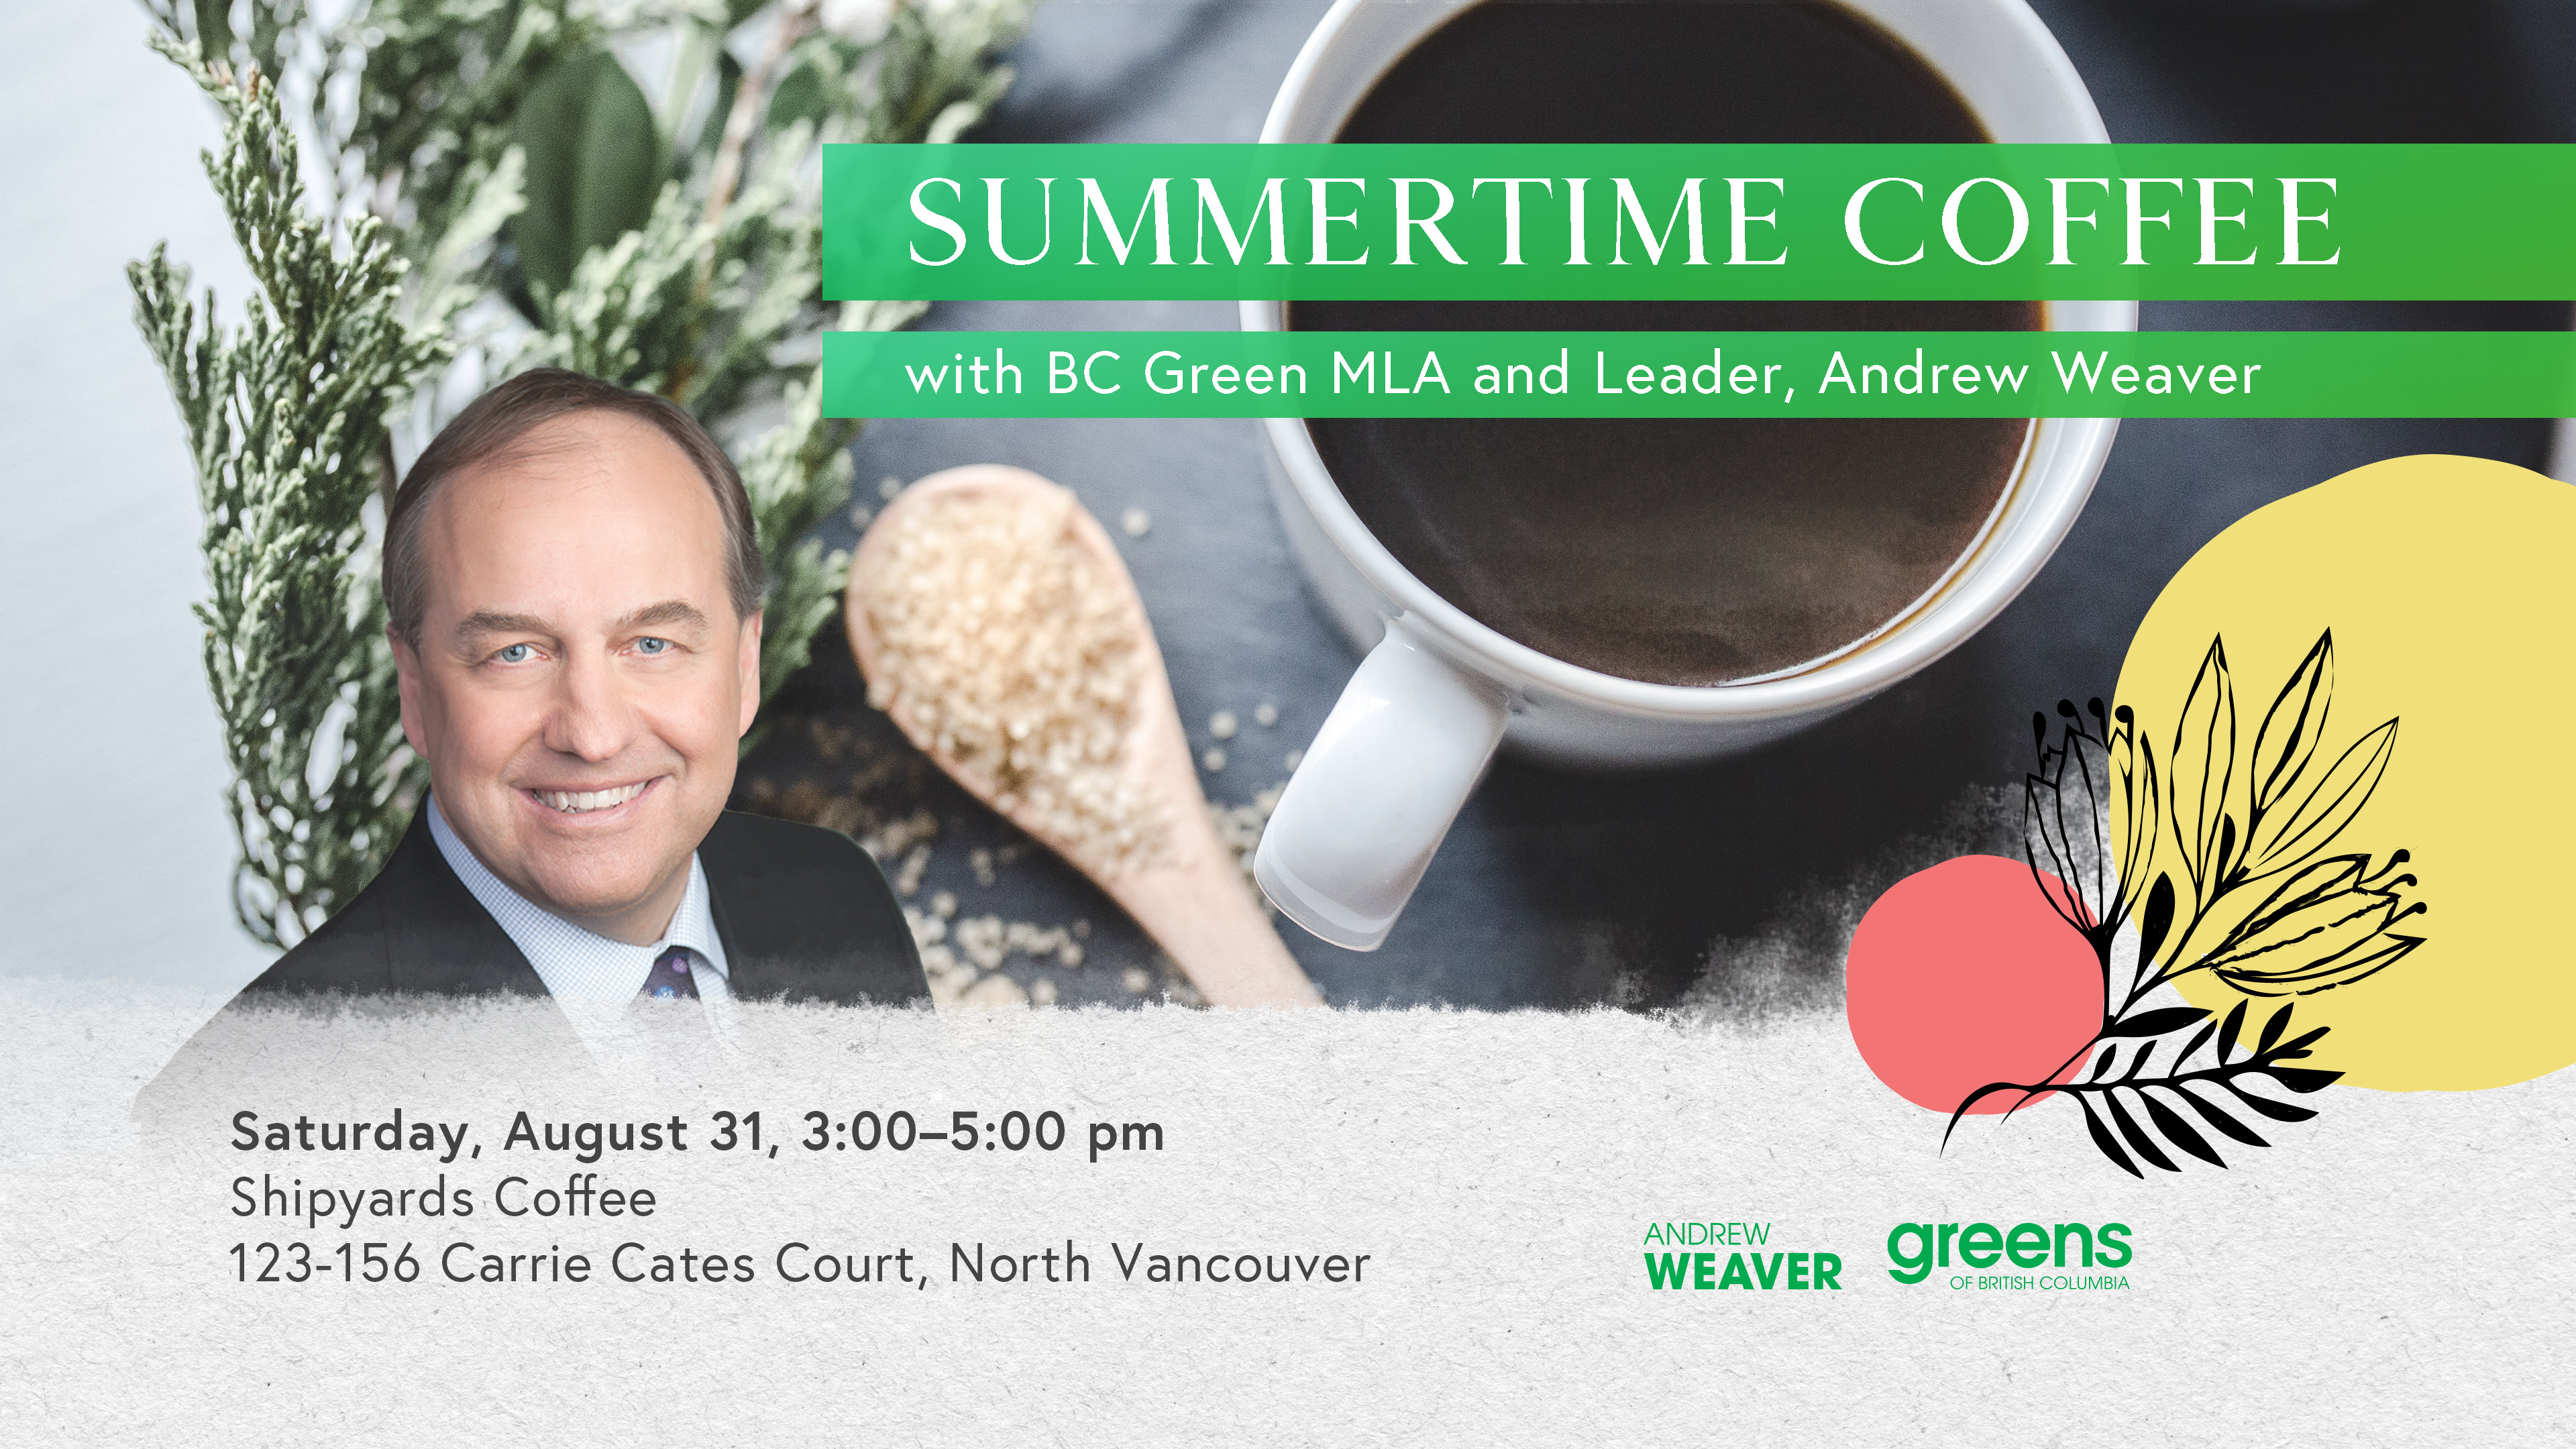 190731_-_North_Shore_-_Summertime_Coffee_with_Andrew_Weaver_-_Facebook_Event_Photo.jpg